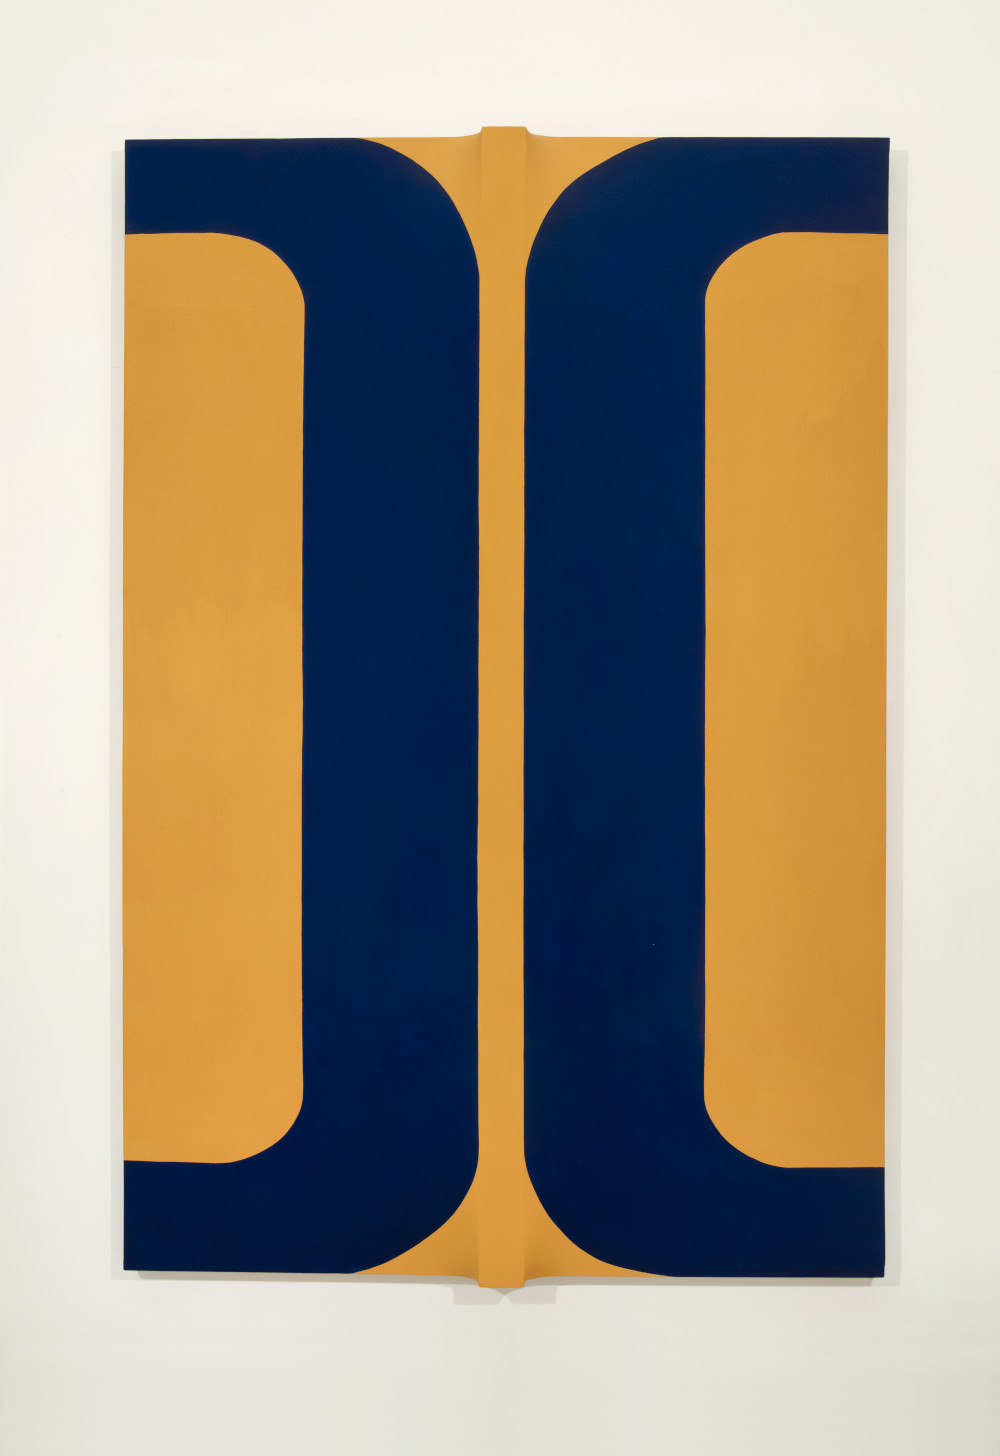 Sven Lukin (b. 1934), Untitled L#9, 1963. Acrylic on canvas construction 71 1/4 (H) x 48 1/8 (W) x 4 1/4 (D) inches